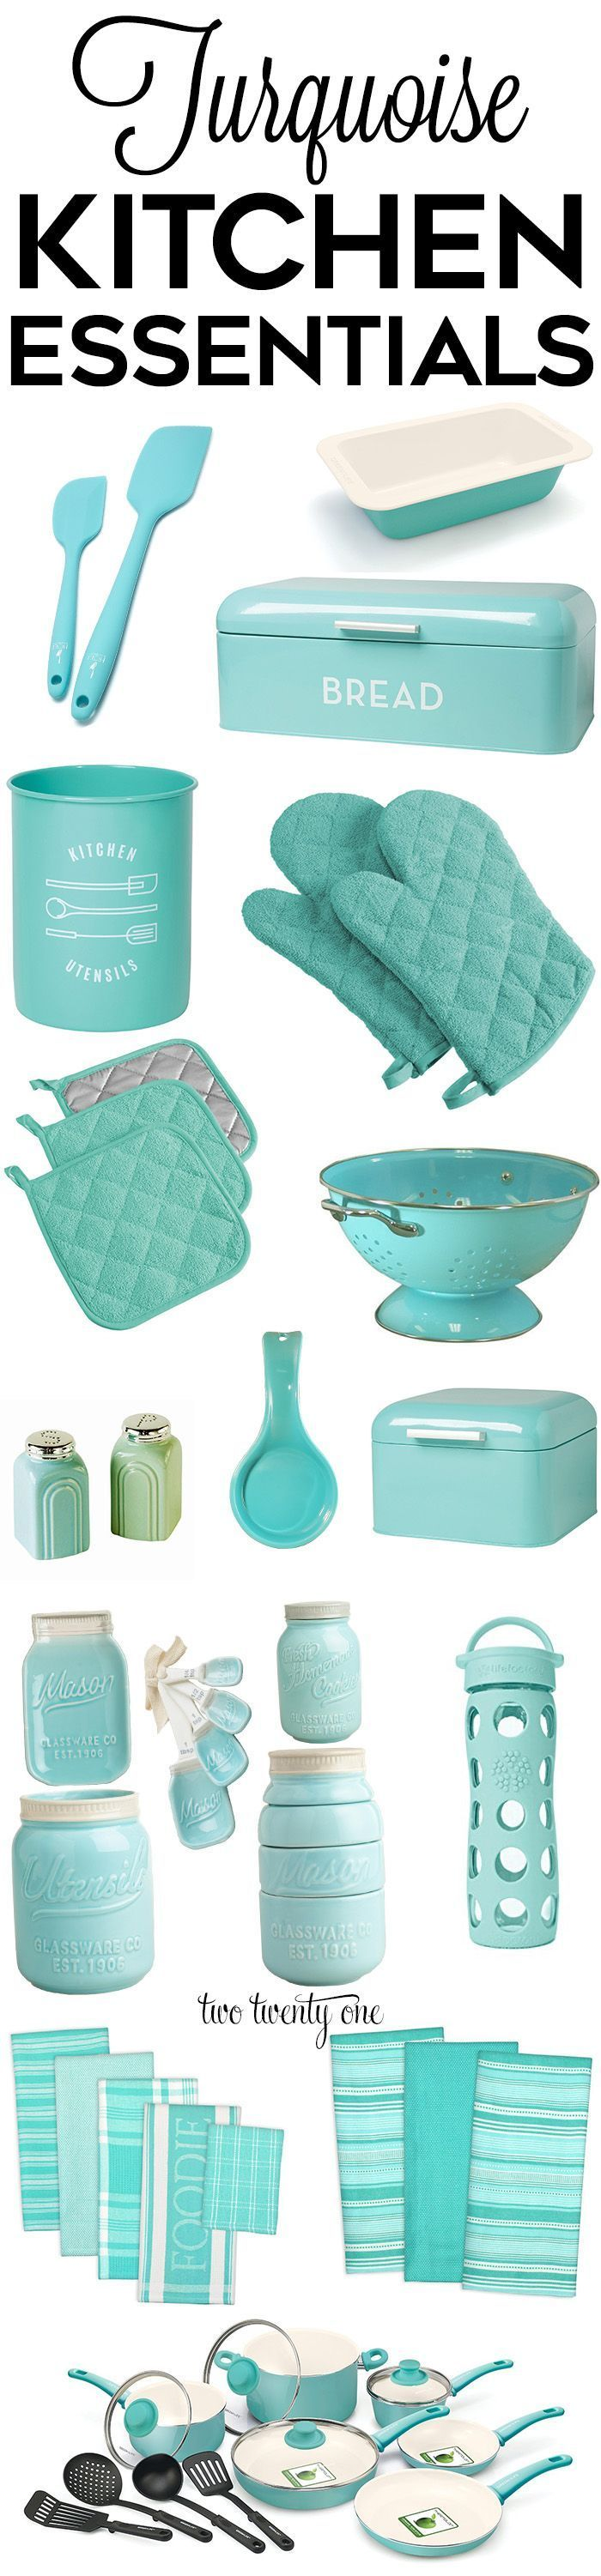 cool Turquoise Kitchen Decor & Appliances by http://www.coolhome-decorationsideas.xyz/kitchen-decor-designs/turquoise-kitchen-decor-appliances/